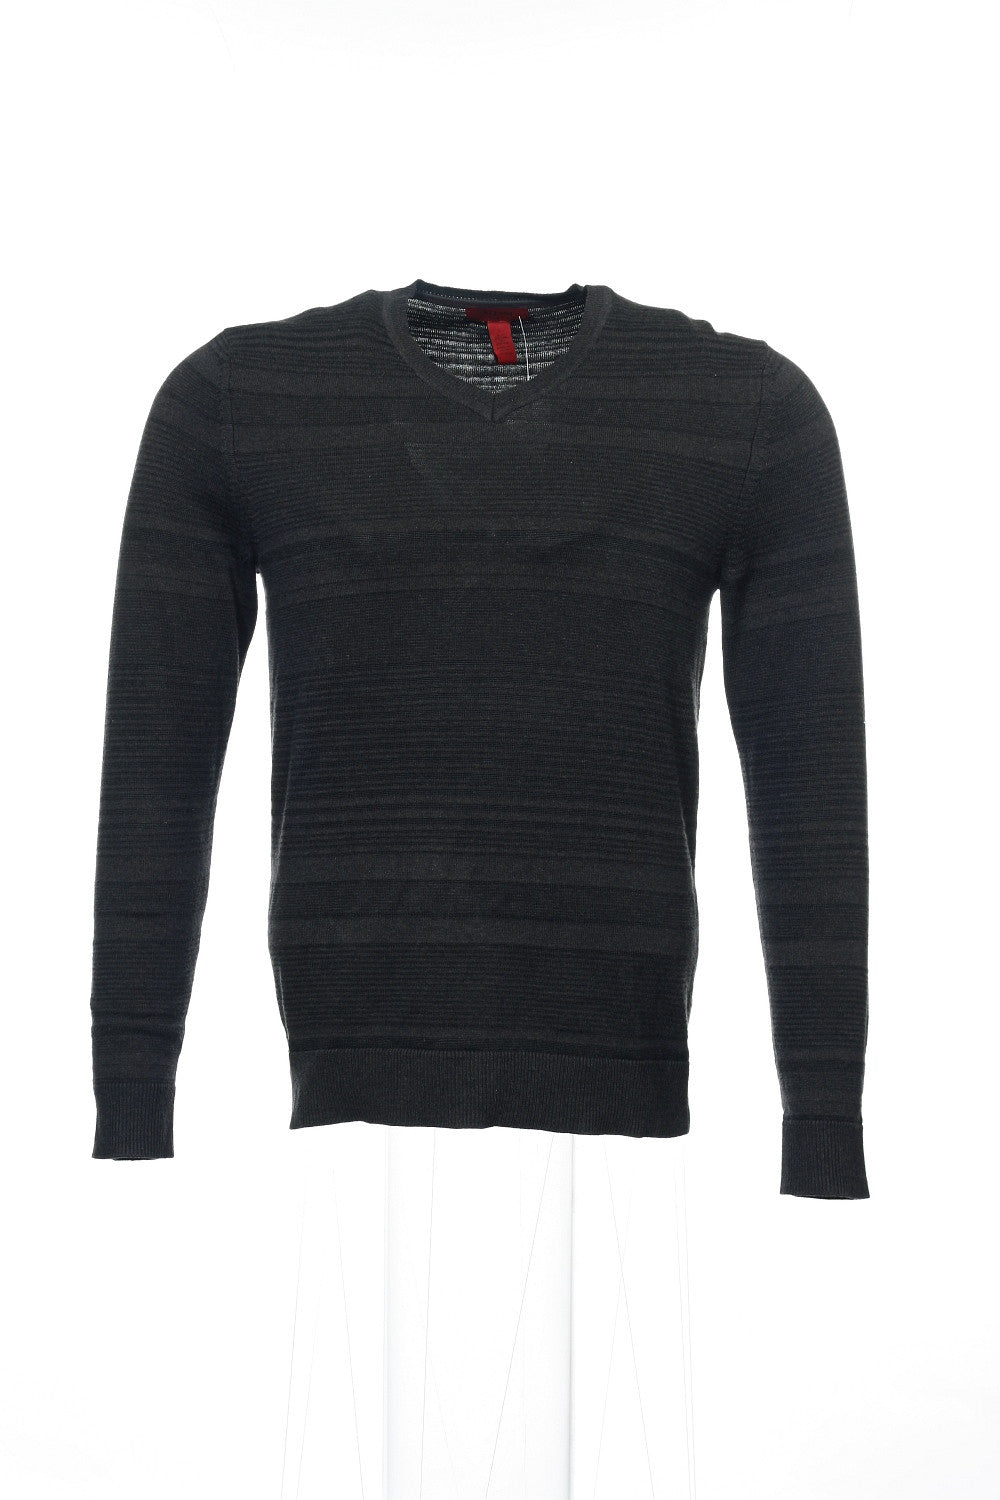 Alfani Red Mens Black Striped V-Neck Sweater